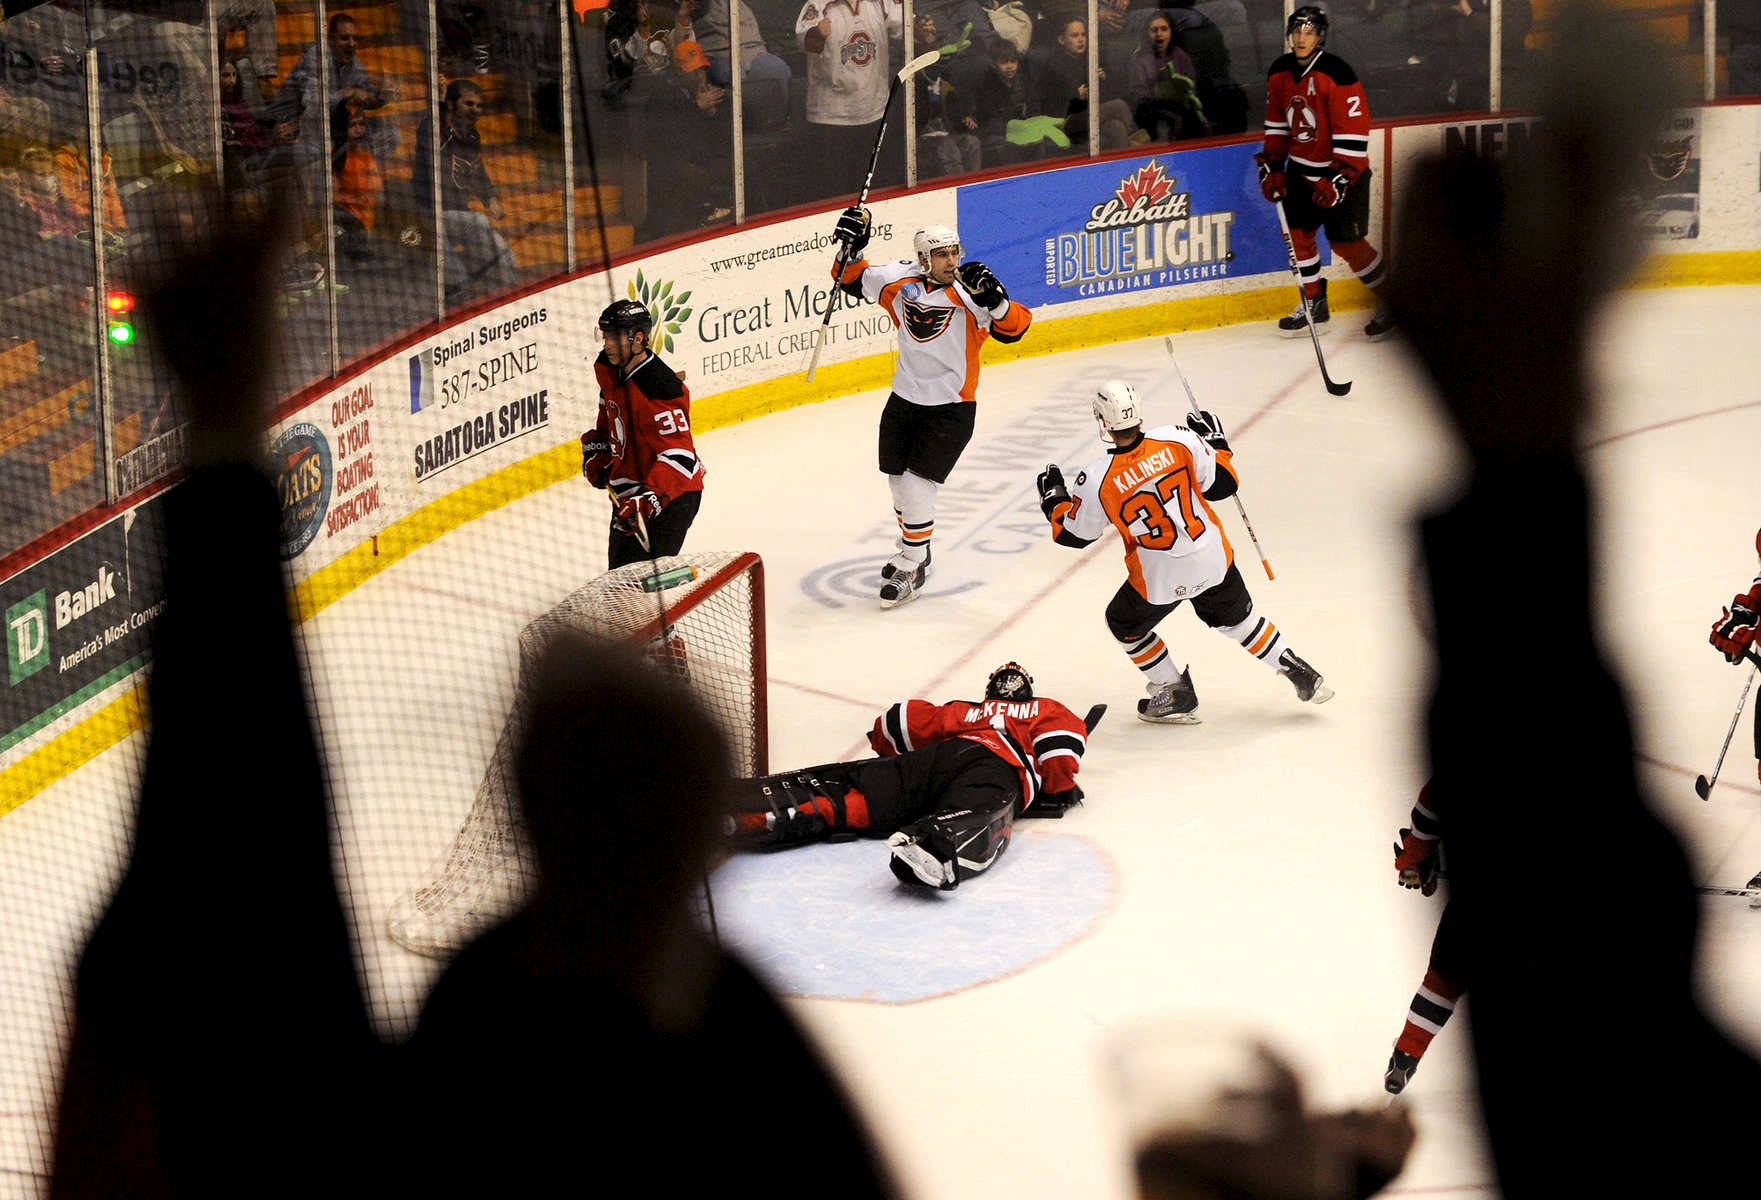 Jason McKibben - jmckibben@poststar.comAlbany Devils goalie Mike McKenna is splayed on the ice and Phantoms fans celebrate as Jonathon Kalinski, 37, and Cullen Eddy react to Eddy\'s second period goal that put the Phantoms ahead 6-2 Friday night, April 1, 2011, at the Glens Falls Civic Center. McKenna was pulled from the game after the goal and replaced by Jeff Frazee.